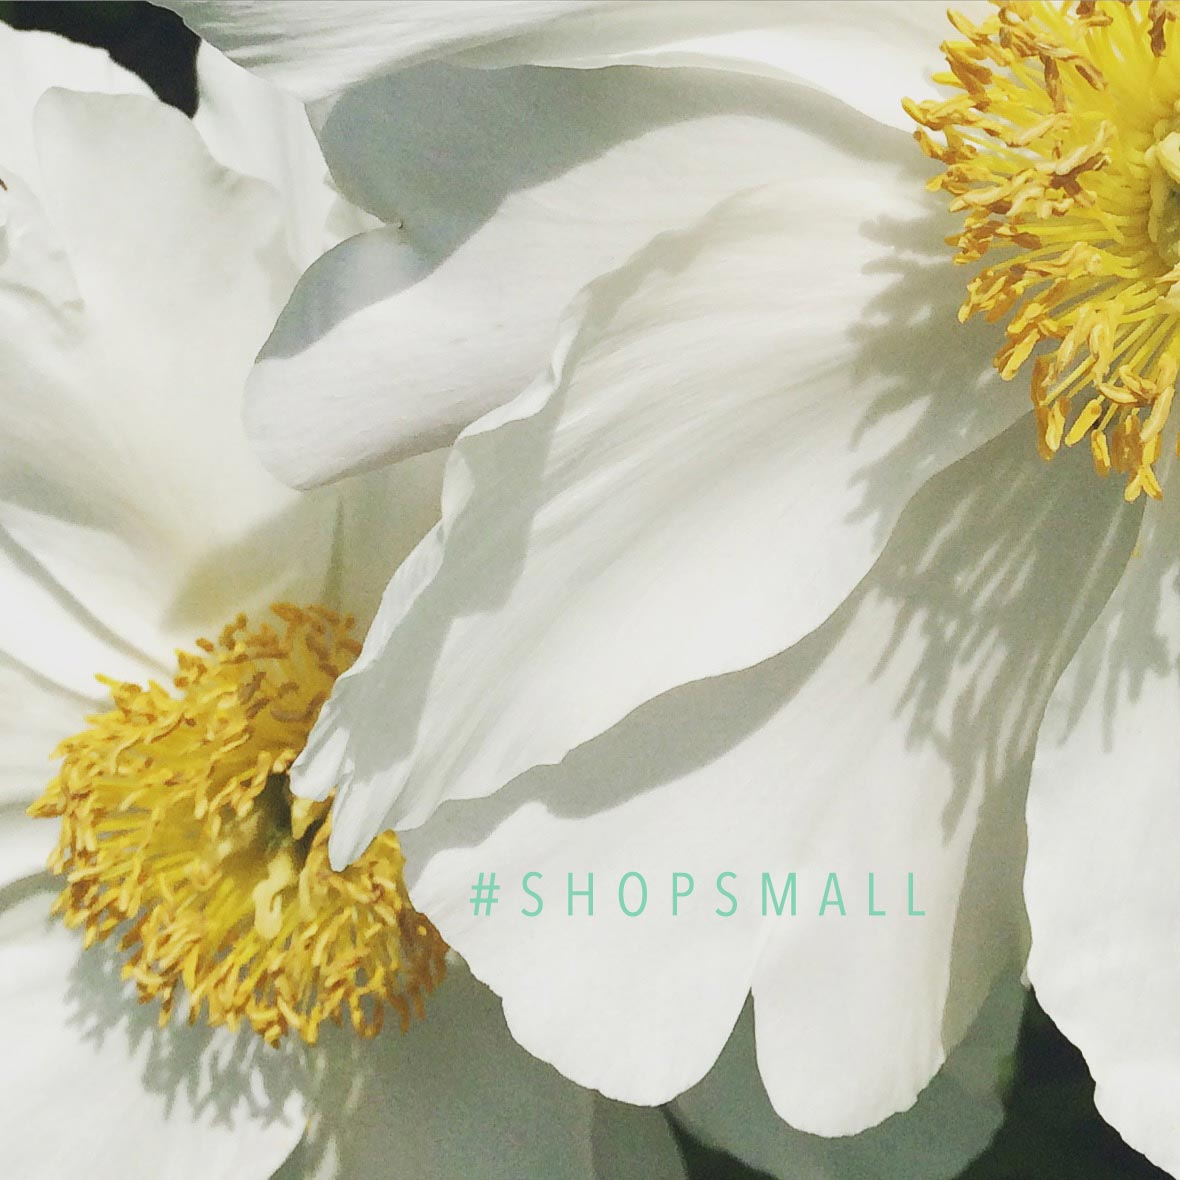 Photo Essay #9 – Great friends – Shop Small